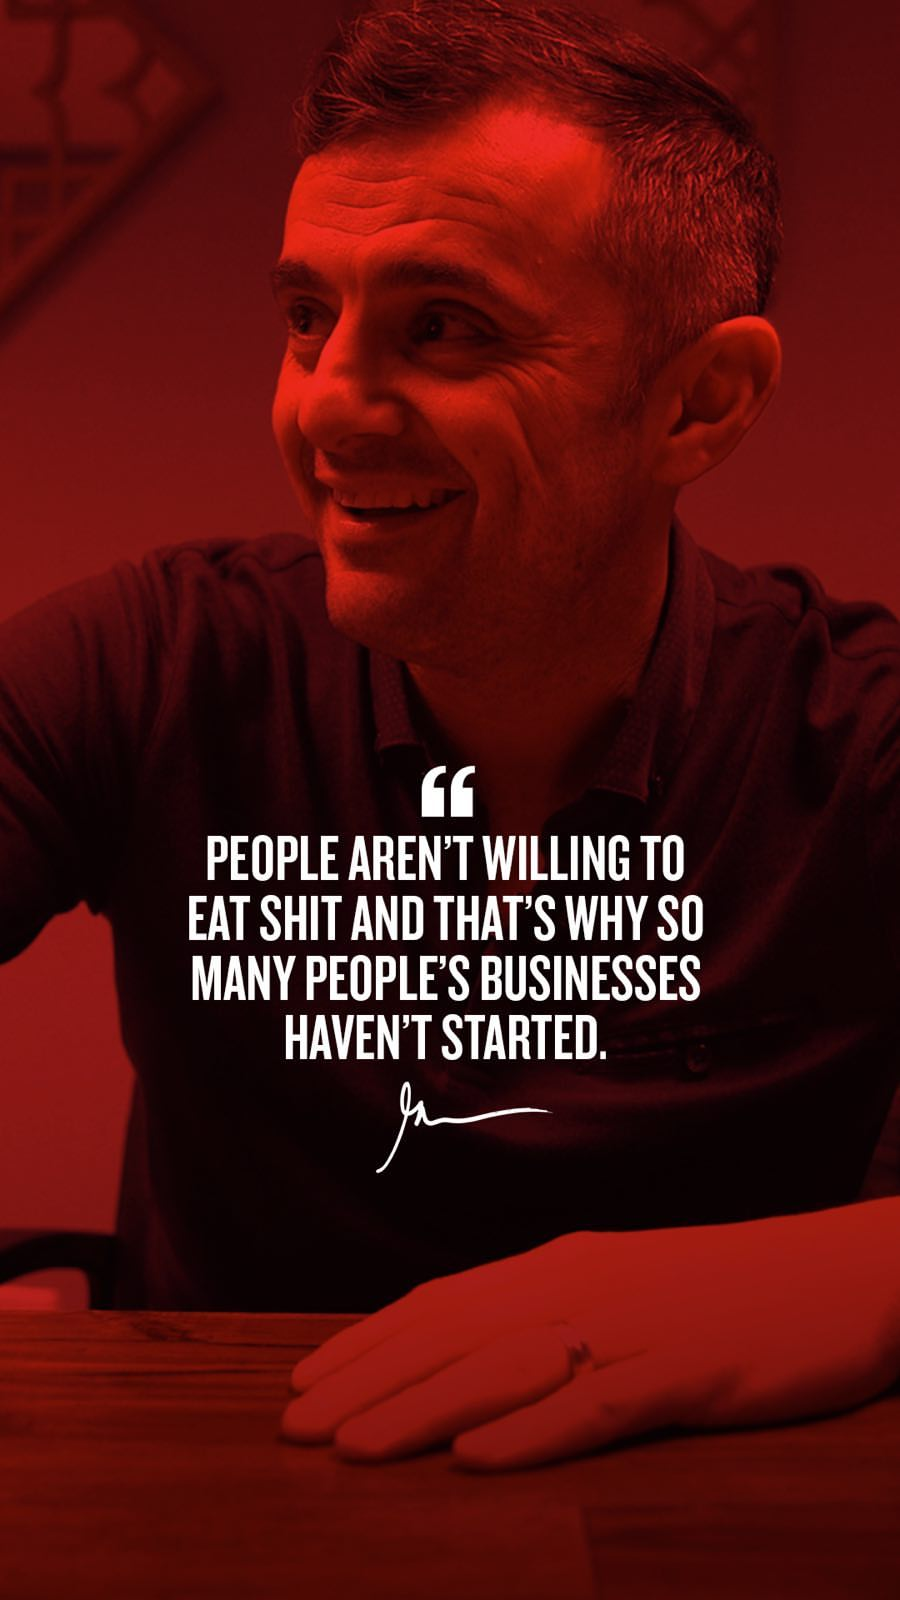 People Aren't Willing To Ear Shit And That's Why So Many People's Business Haven't Started